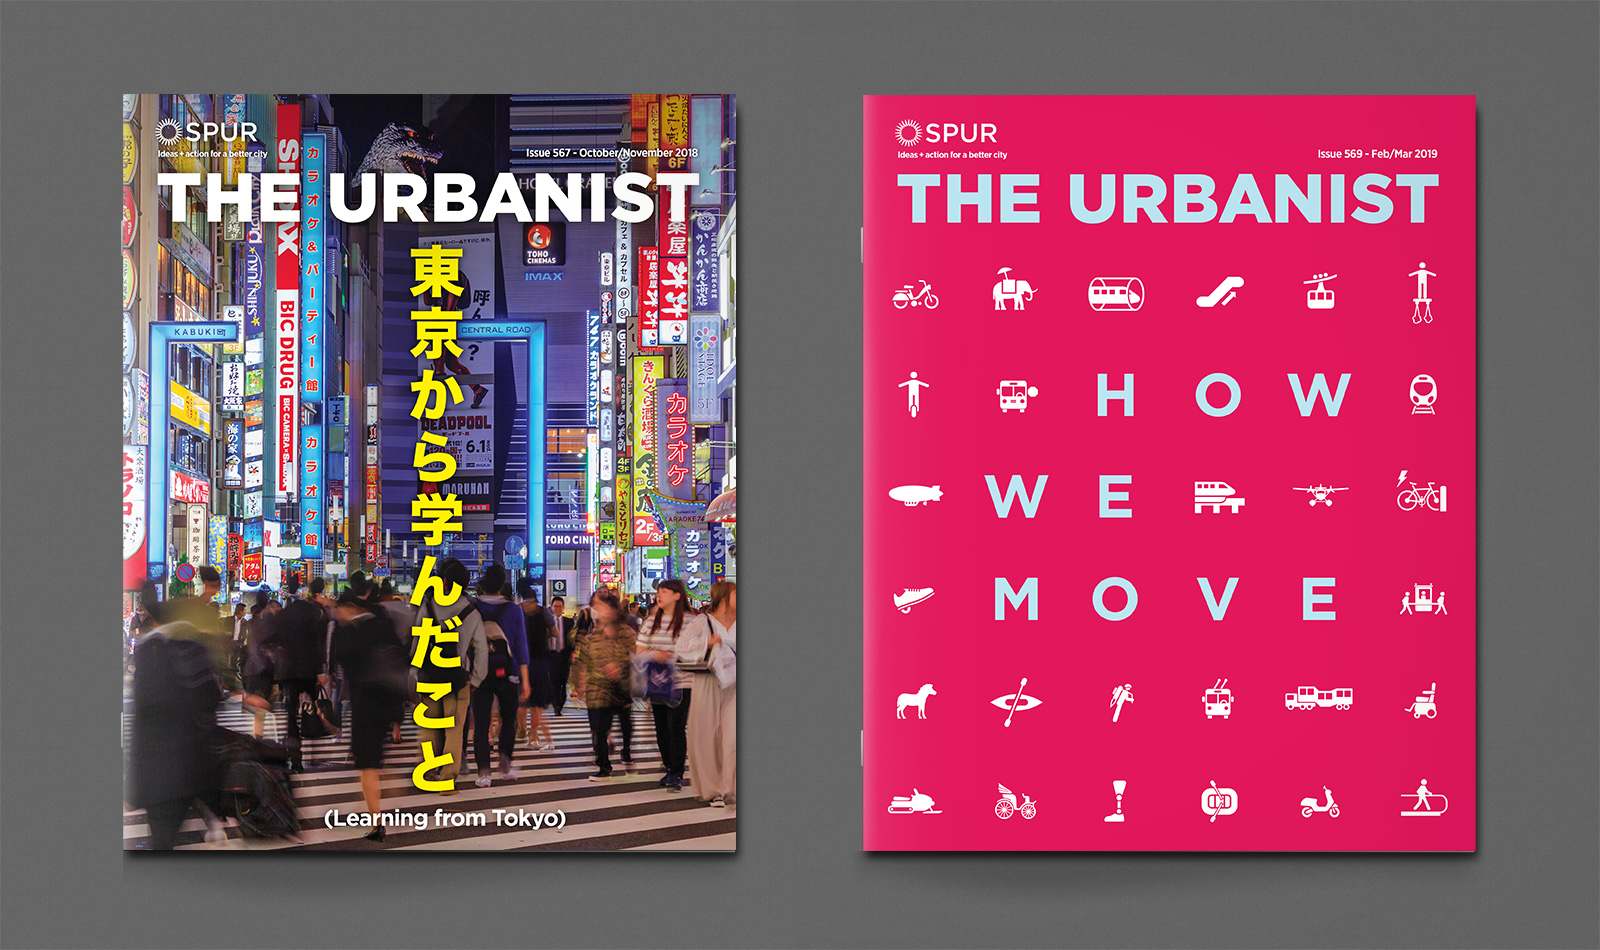 urbanist-spur-cover-2018-2019-new